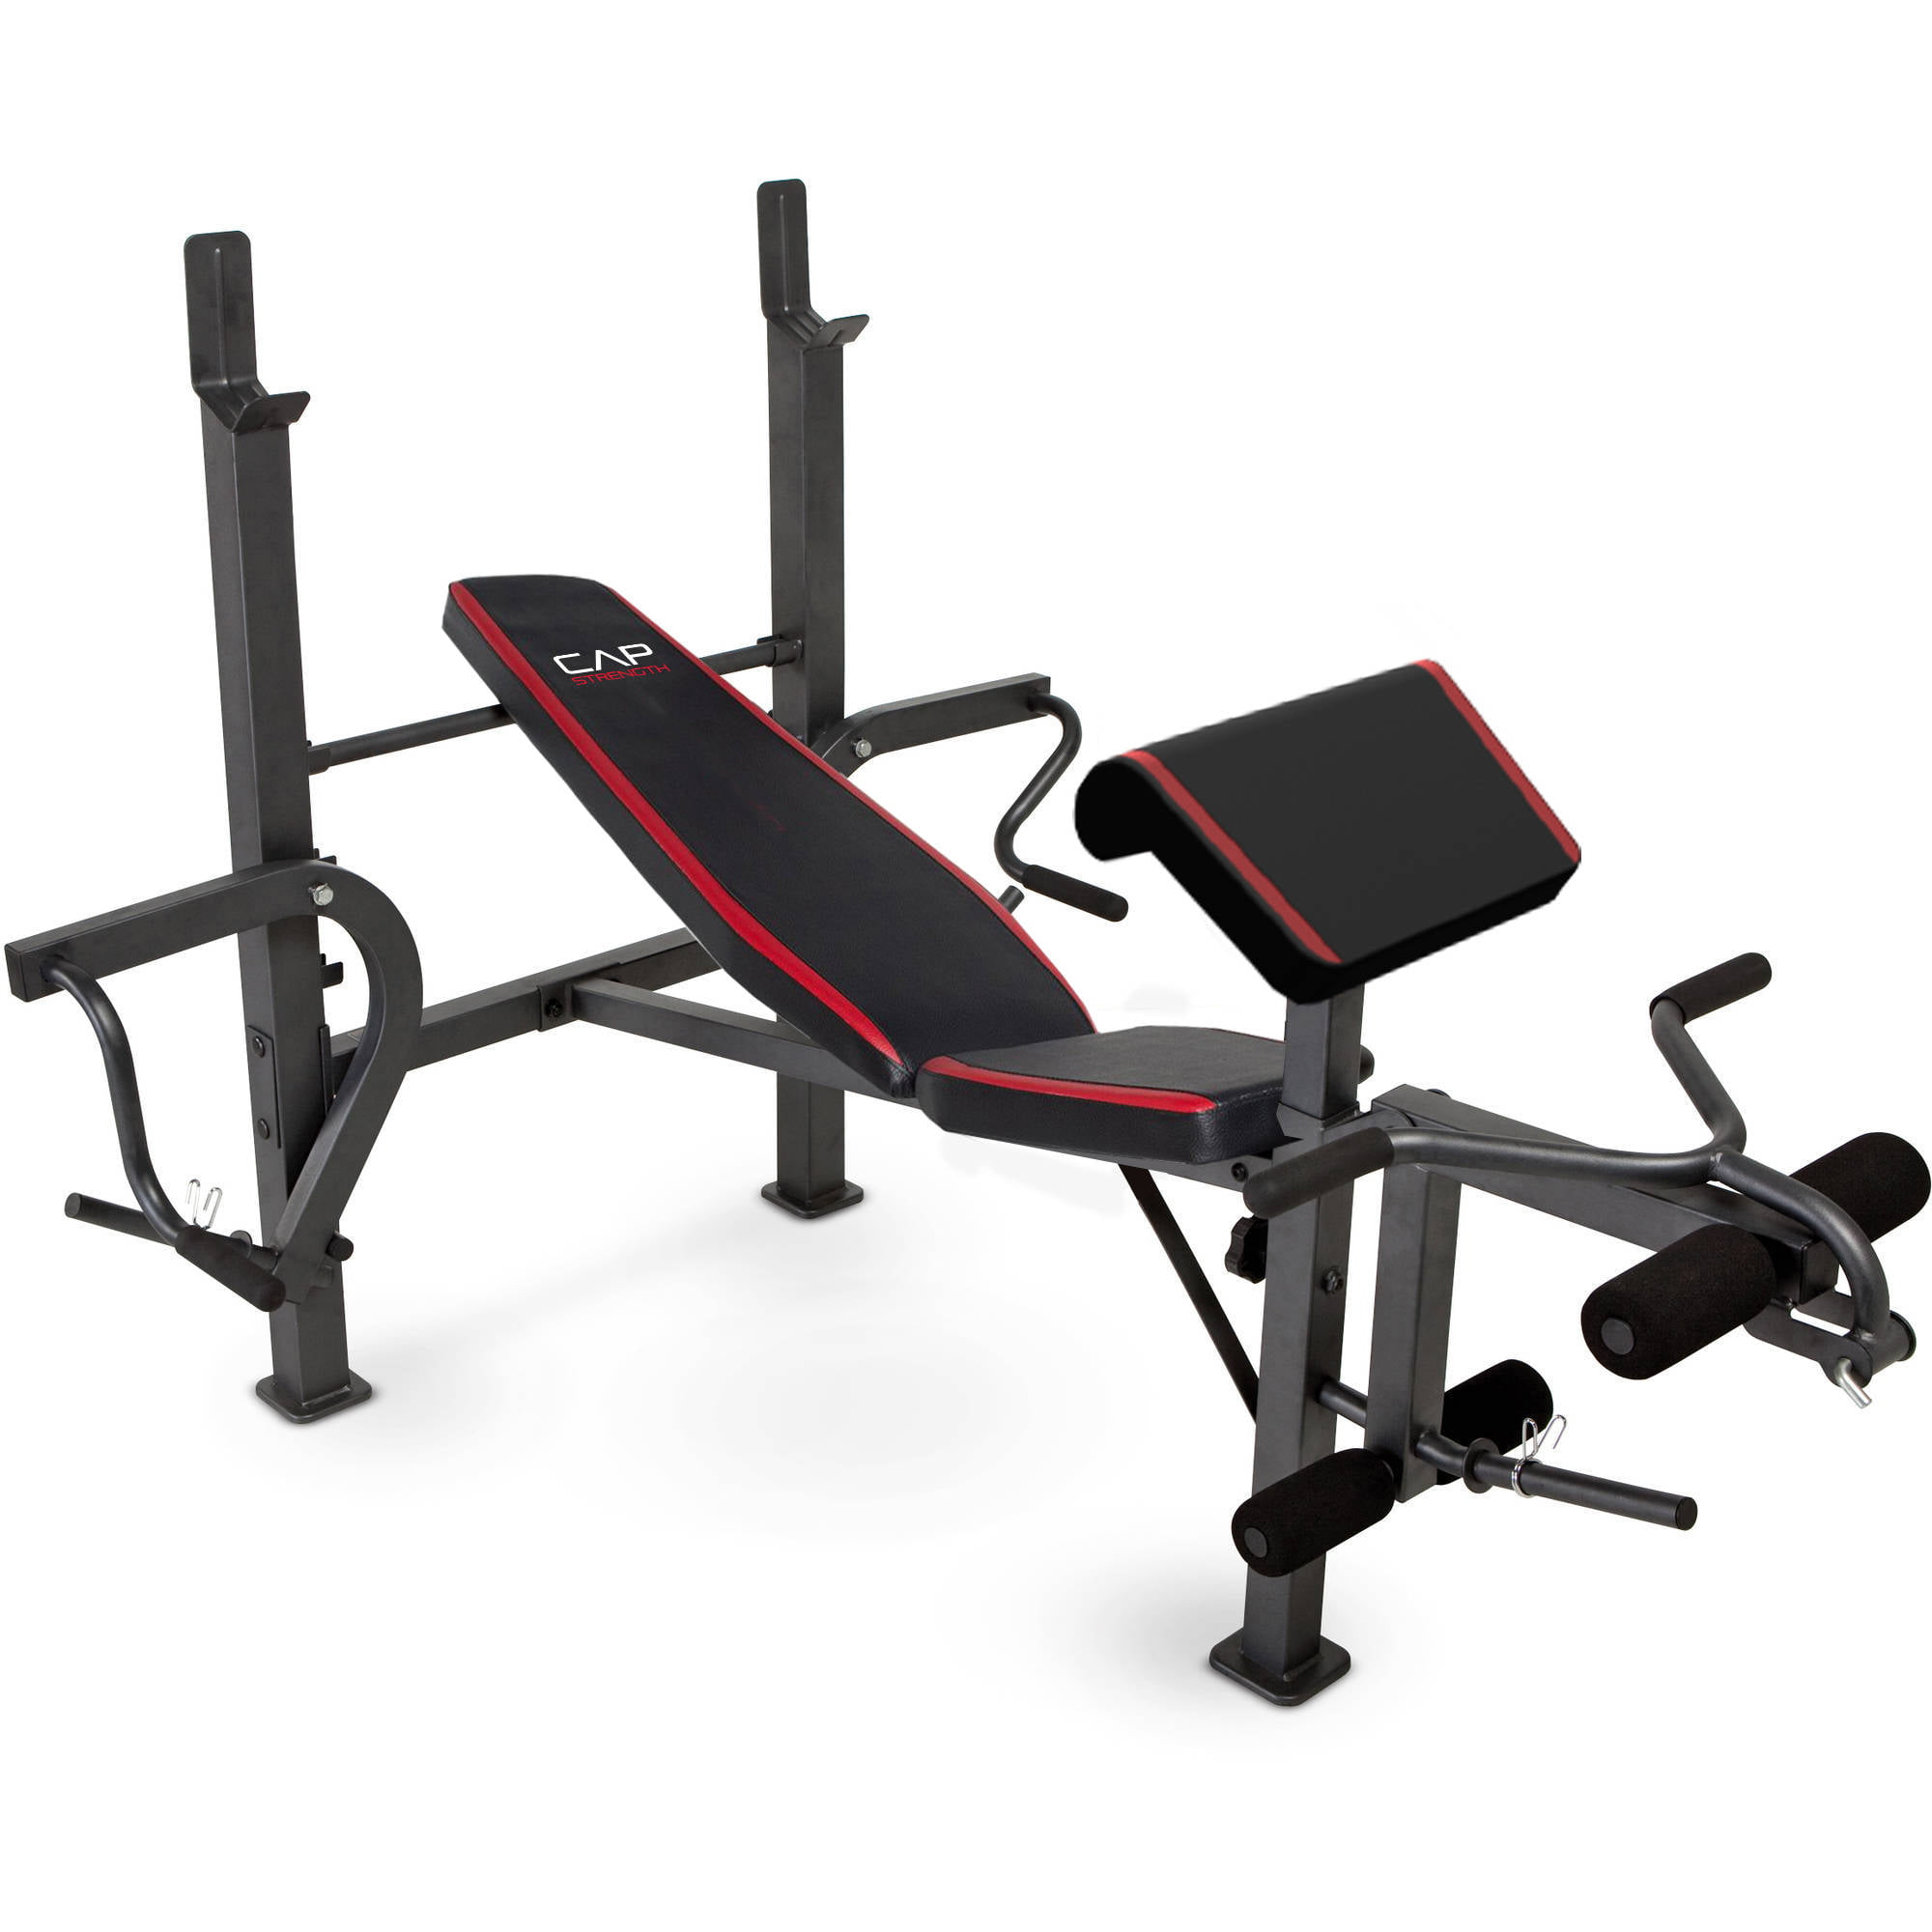 Standard Bench Butterfly Preacher Curl Strength Train Home